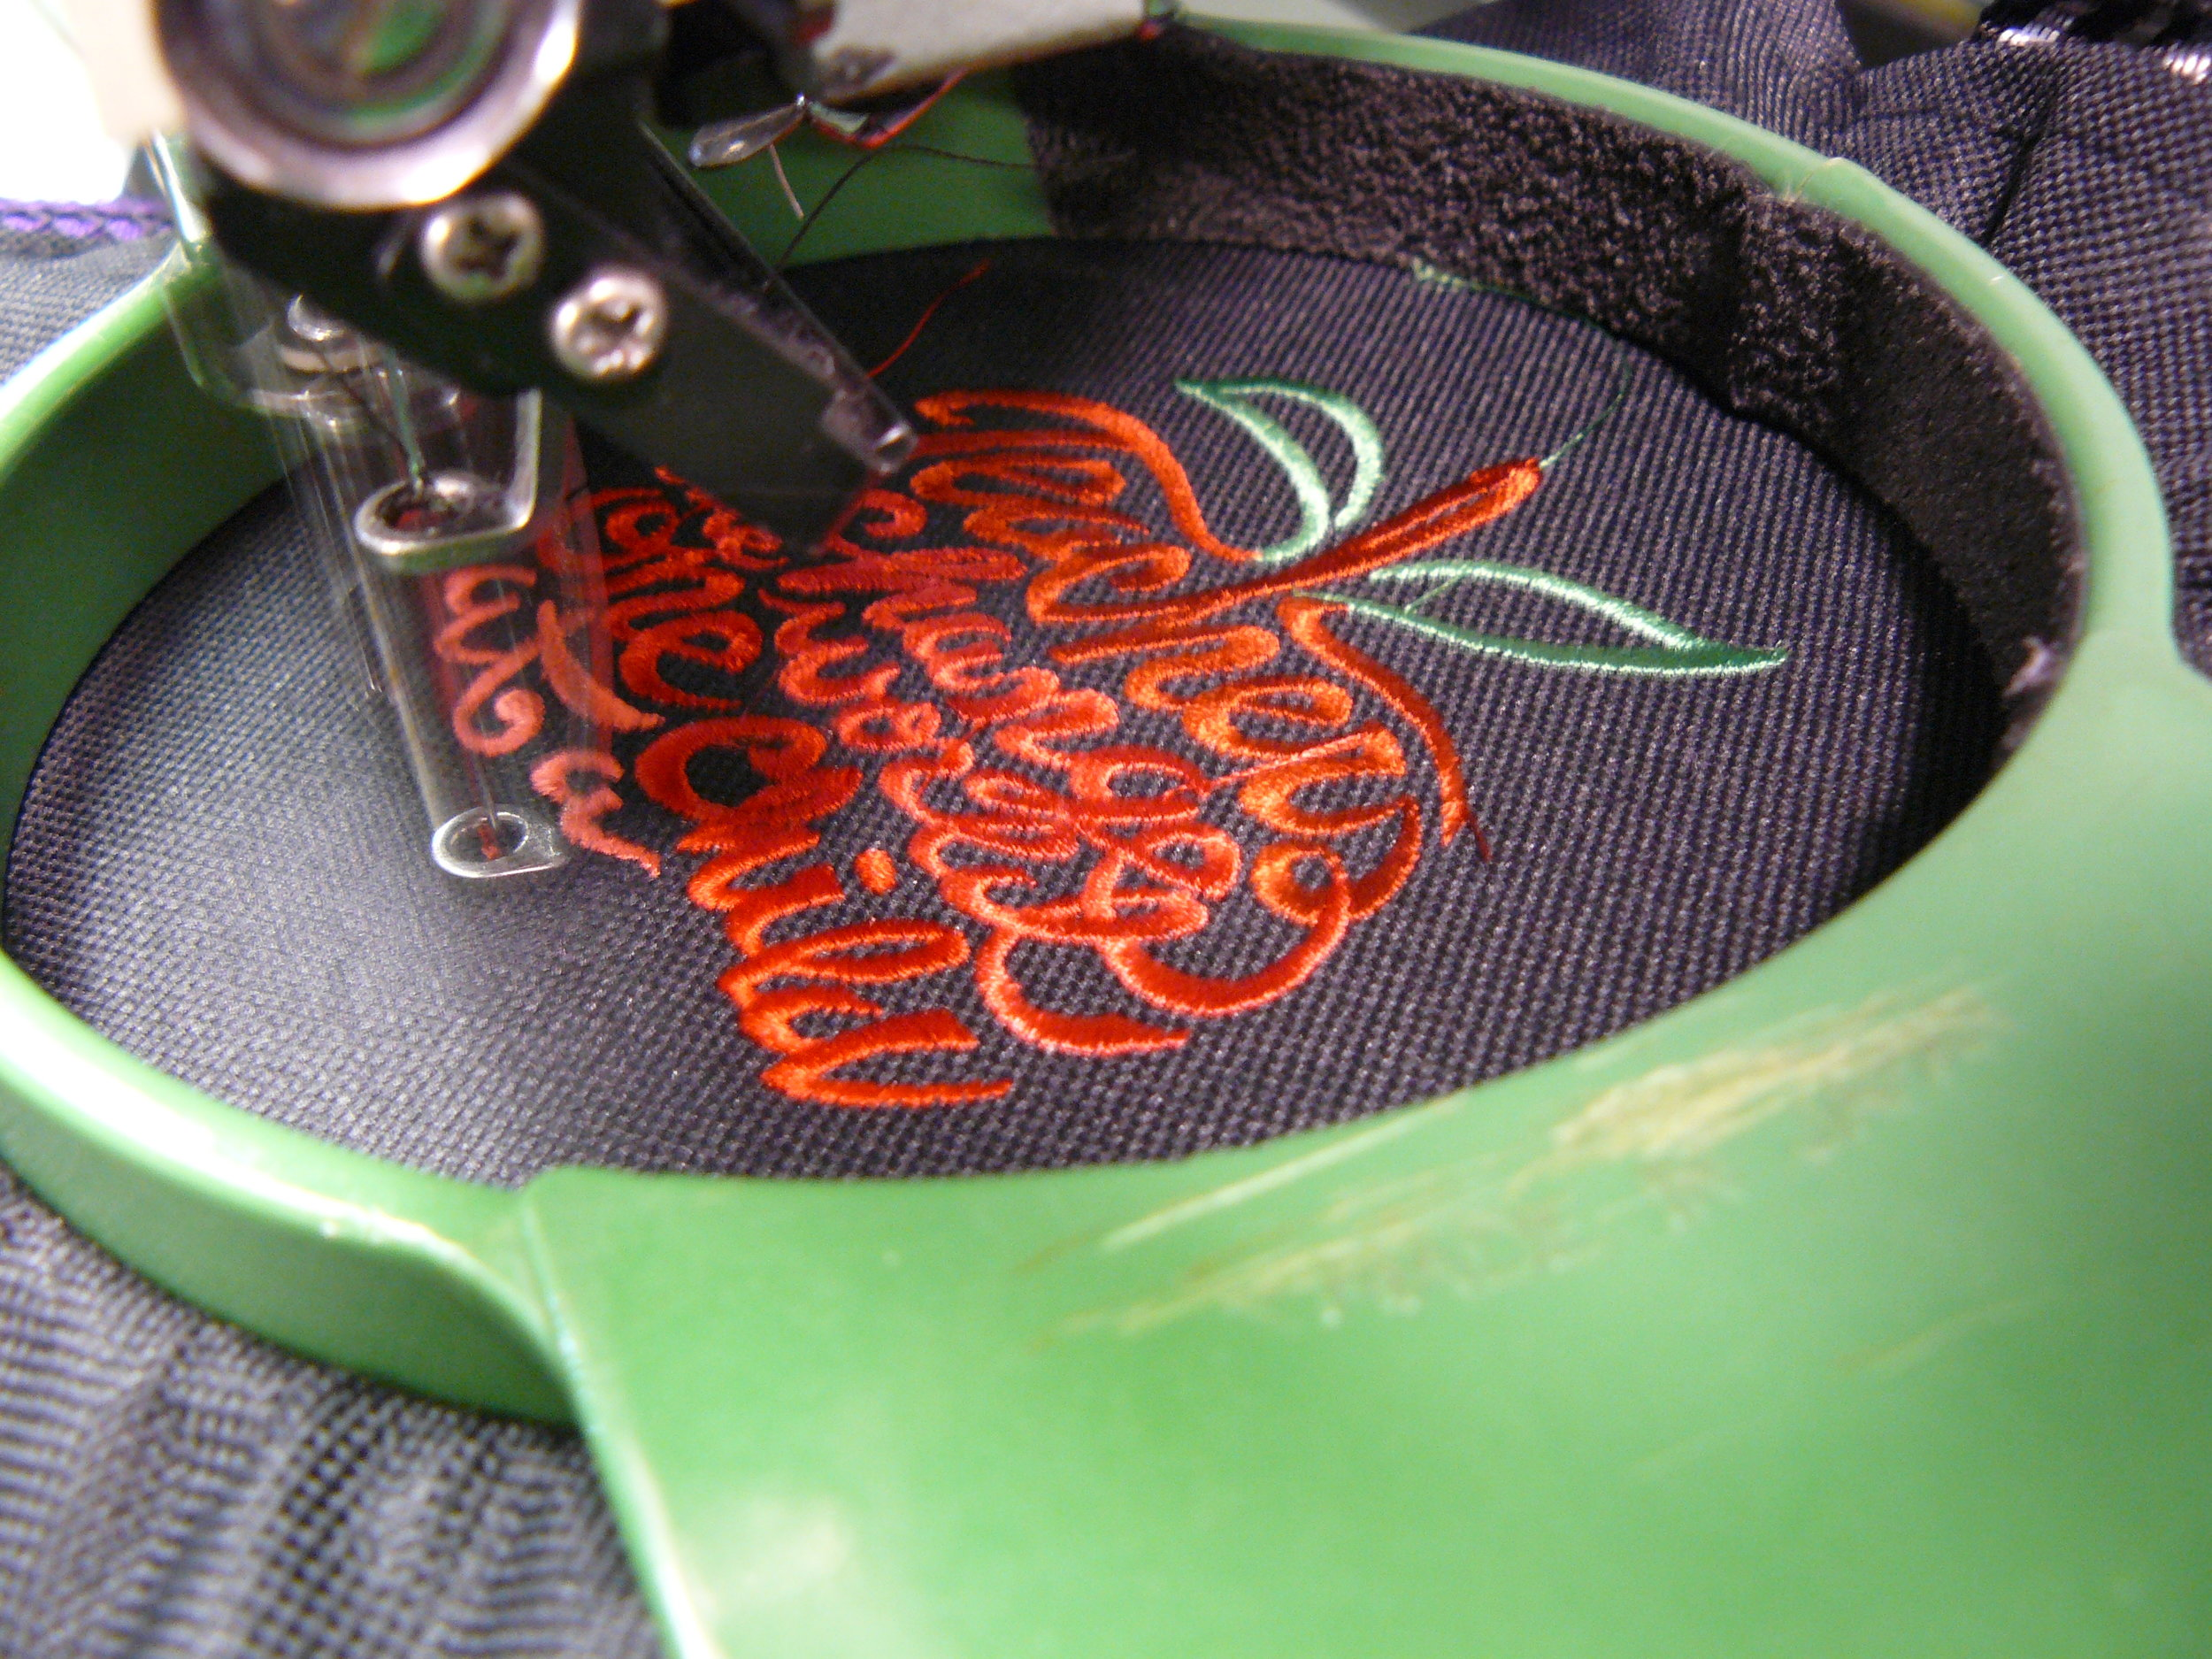 TOTE BAGS - Custom embroidered tote bags in great styles!